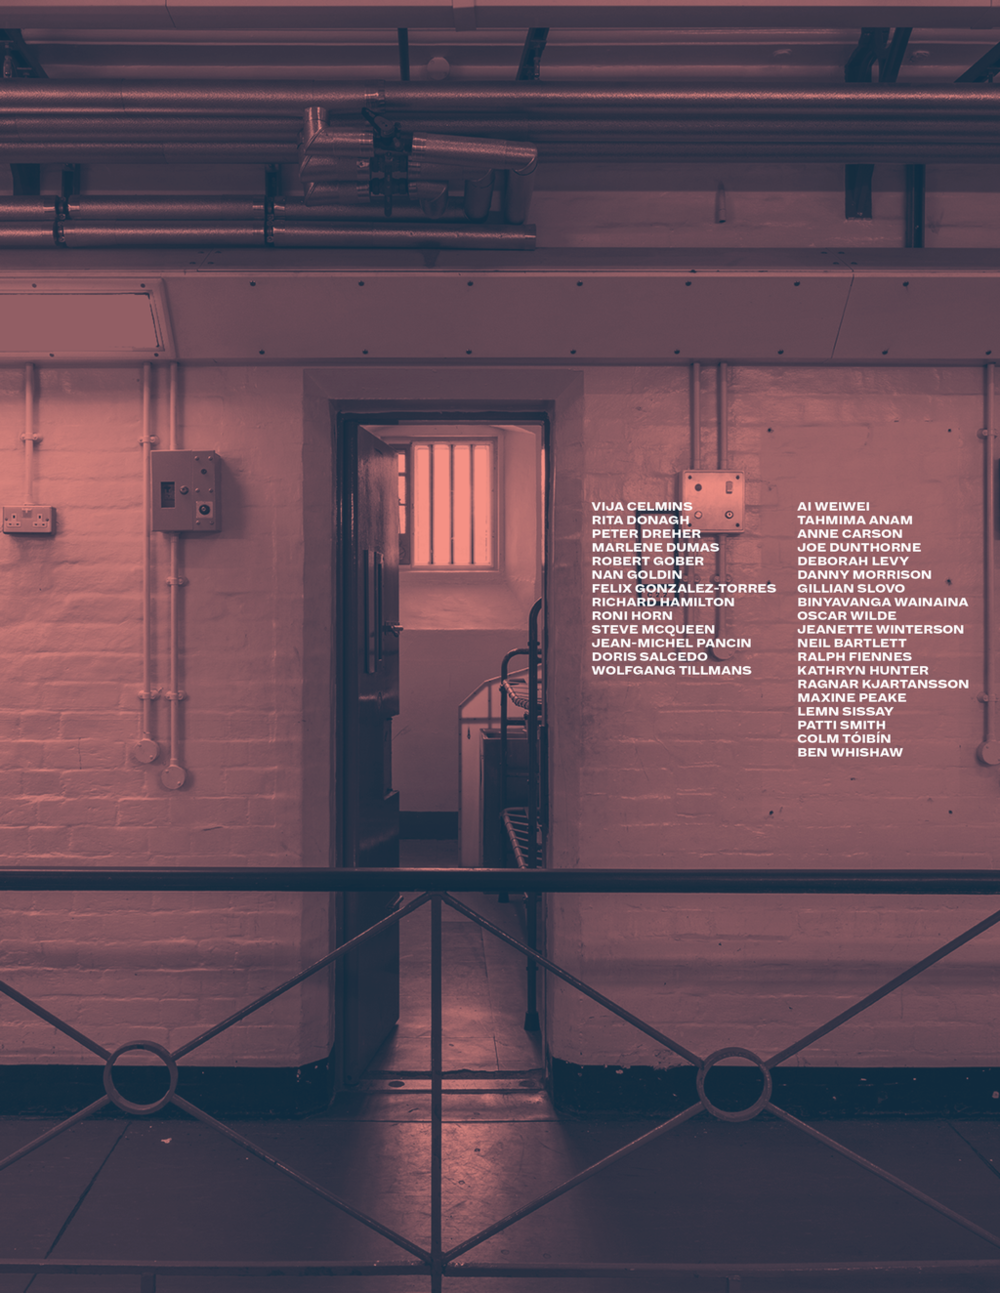 Artangel's   Inside: Artists and Performers in Reading Prison   exhibition, 2016.